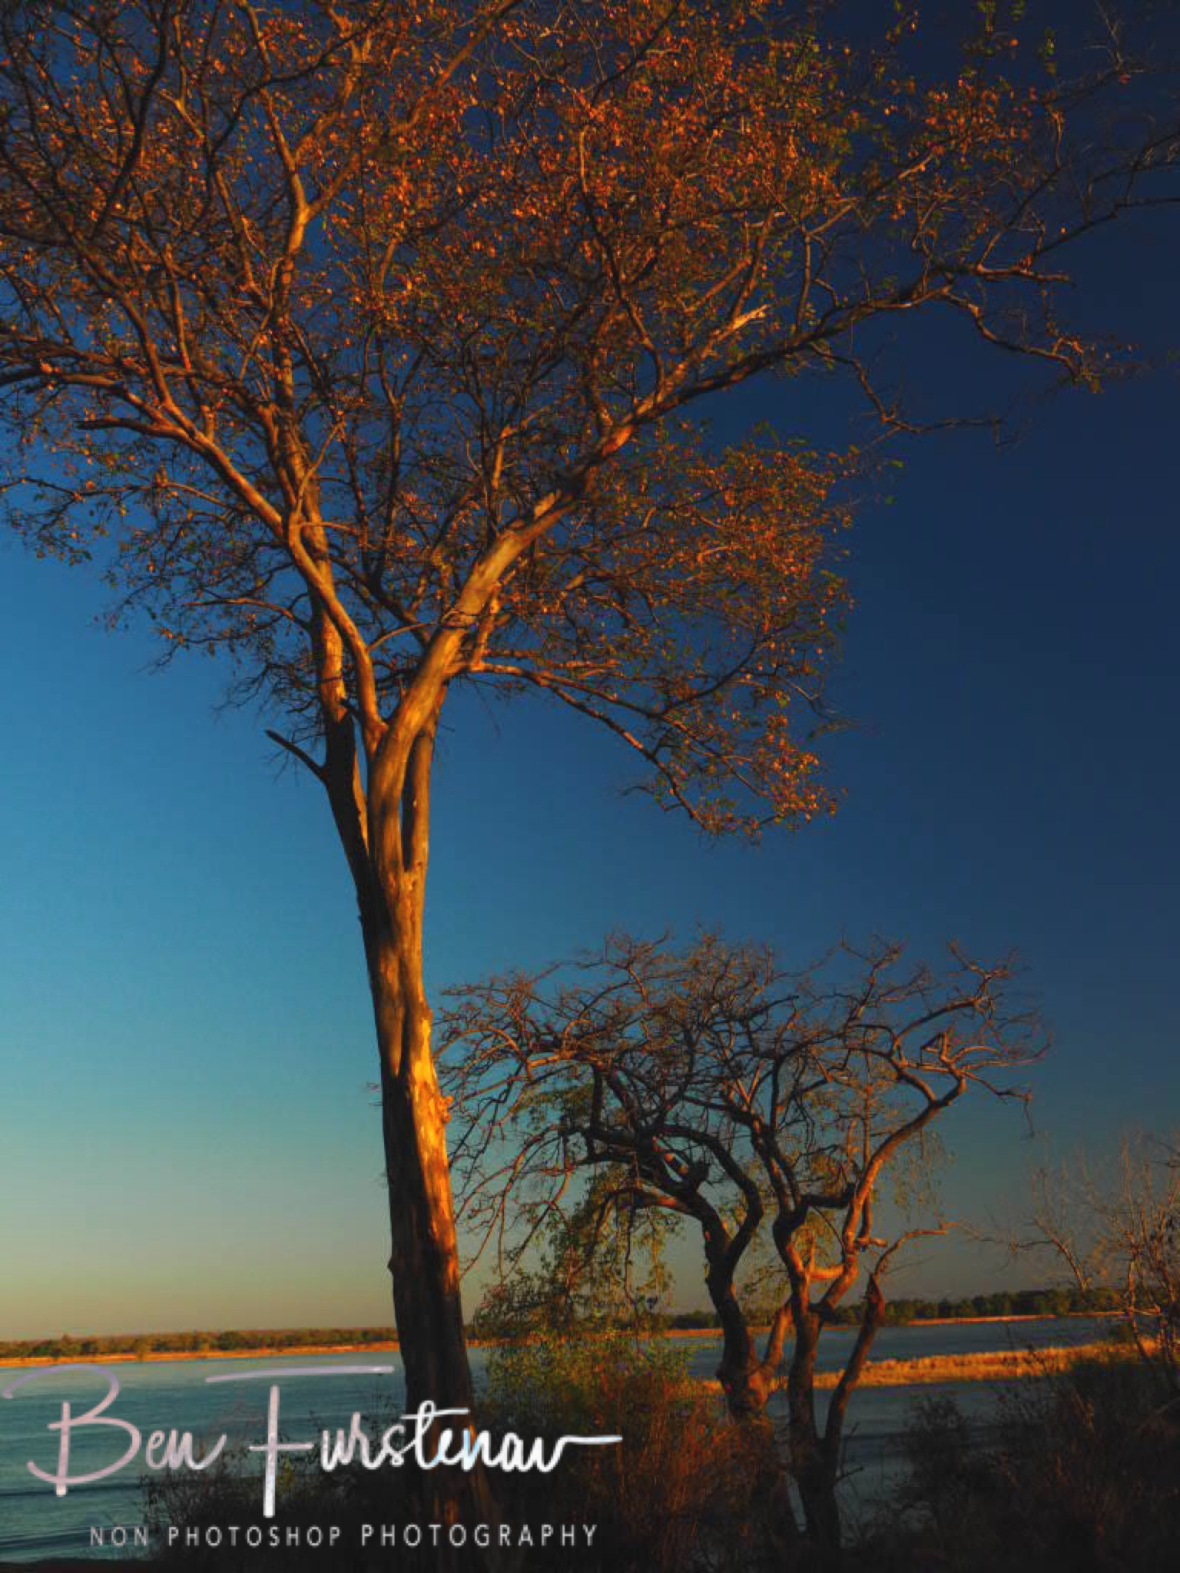 Trees on Zambezi River, Lower Zambezi Valley, Zambia